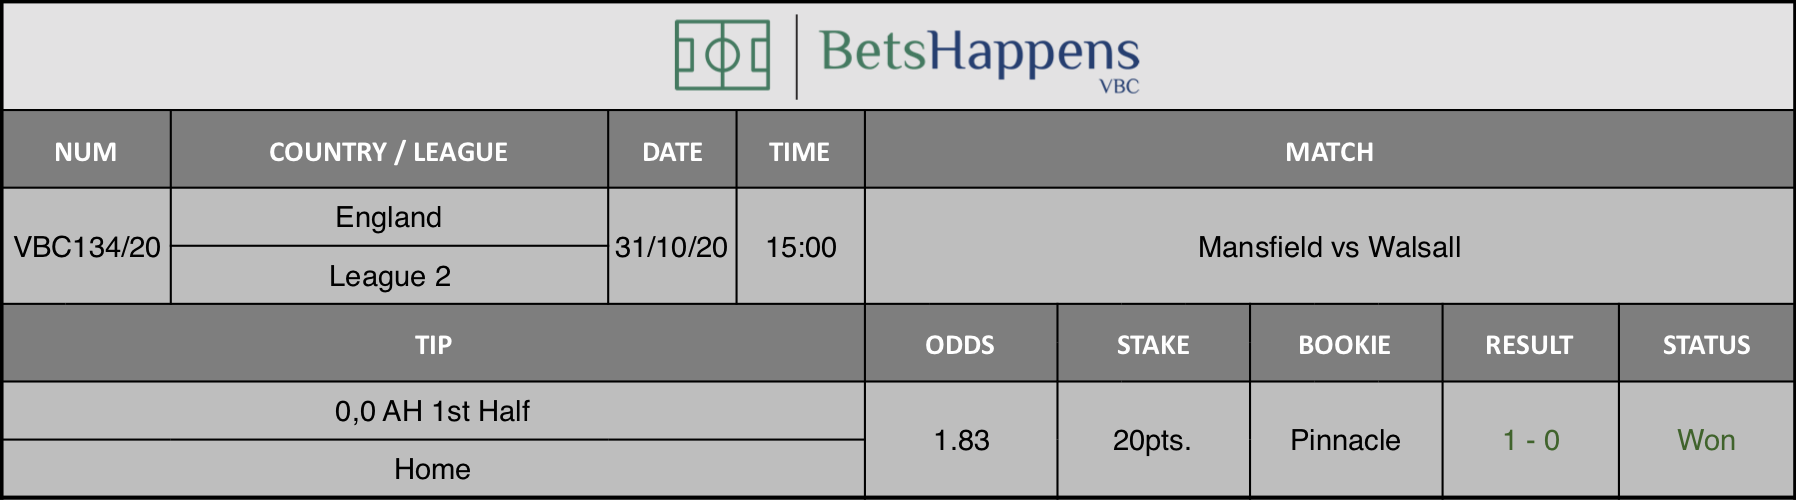 Results of our tip for the Mansfield vs Walsall  match where 0,0 AH 1st Half Home is recommended.